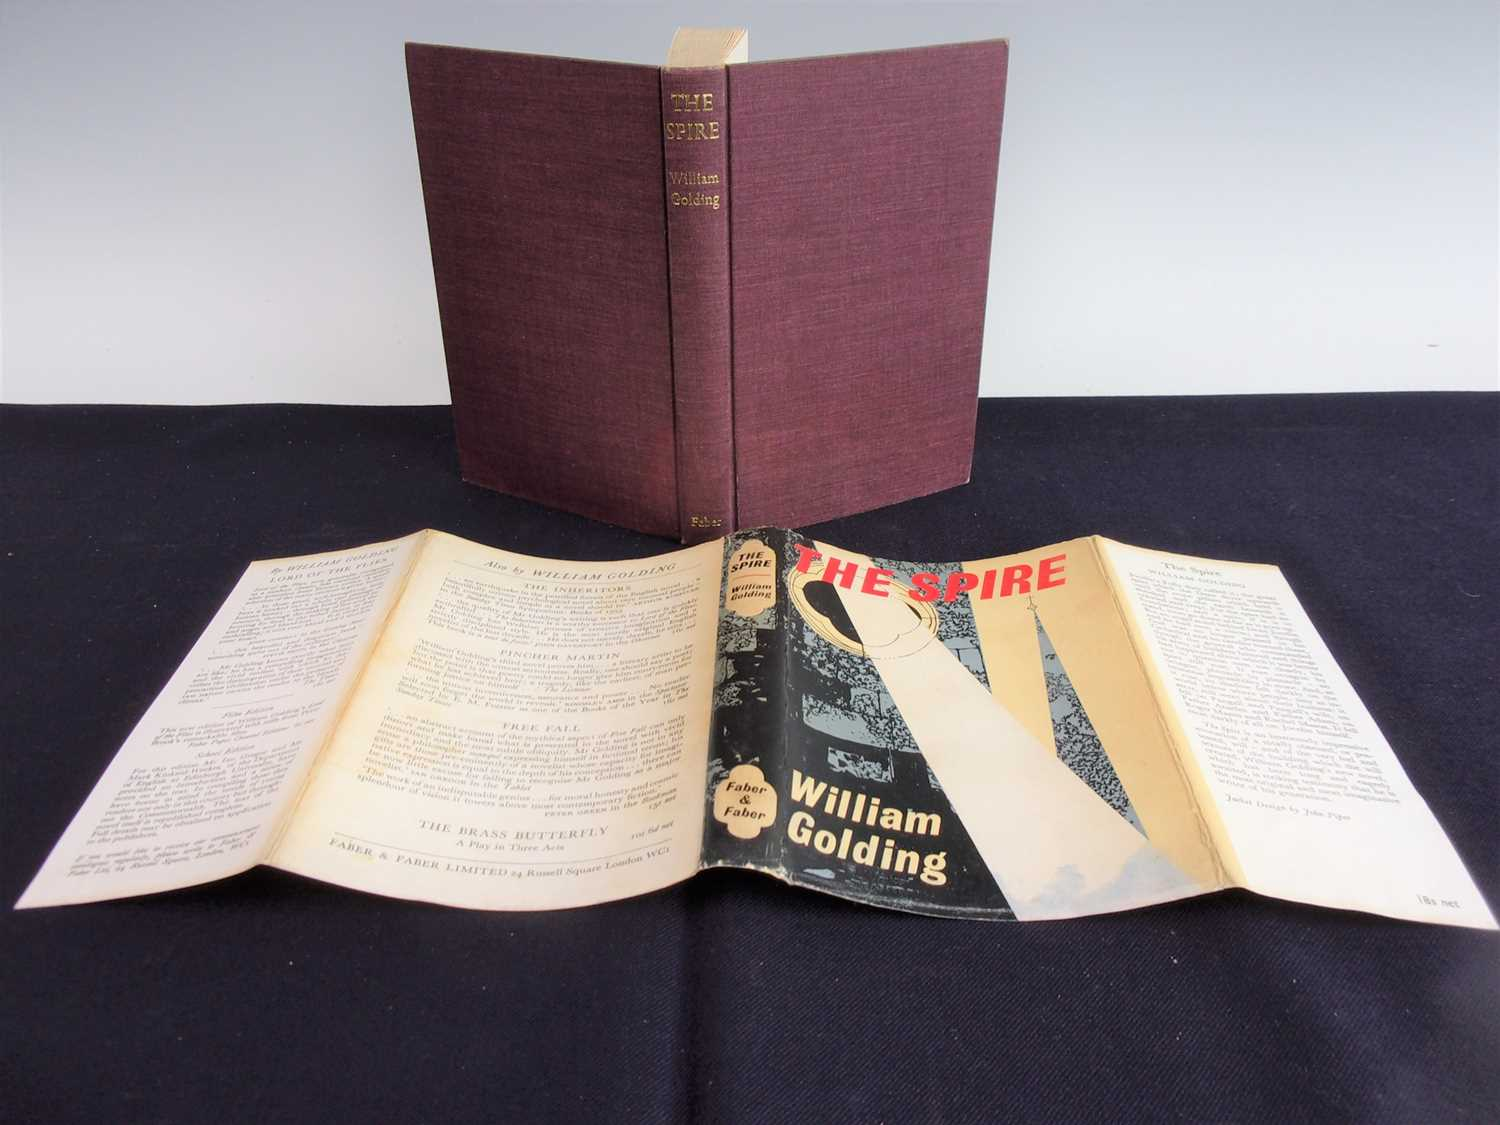 Lot 3006 - GOLDING, William. The Spire. Faber & Faber,...